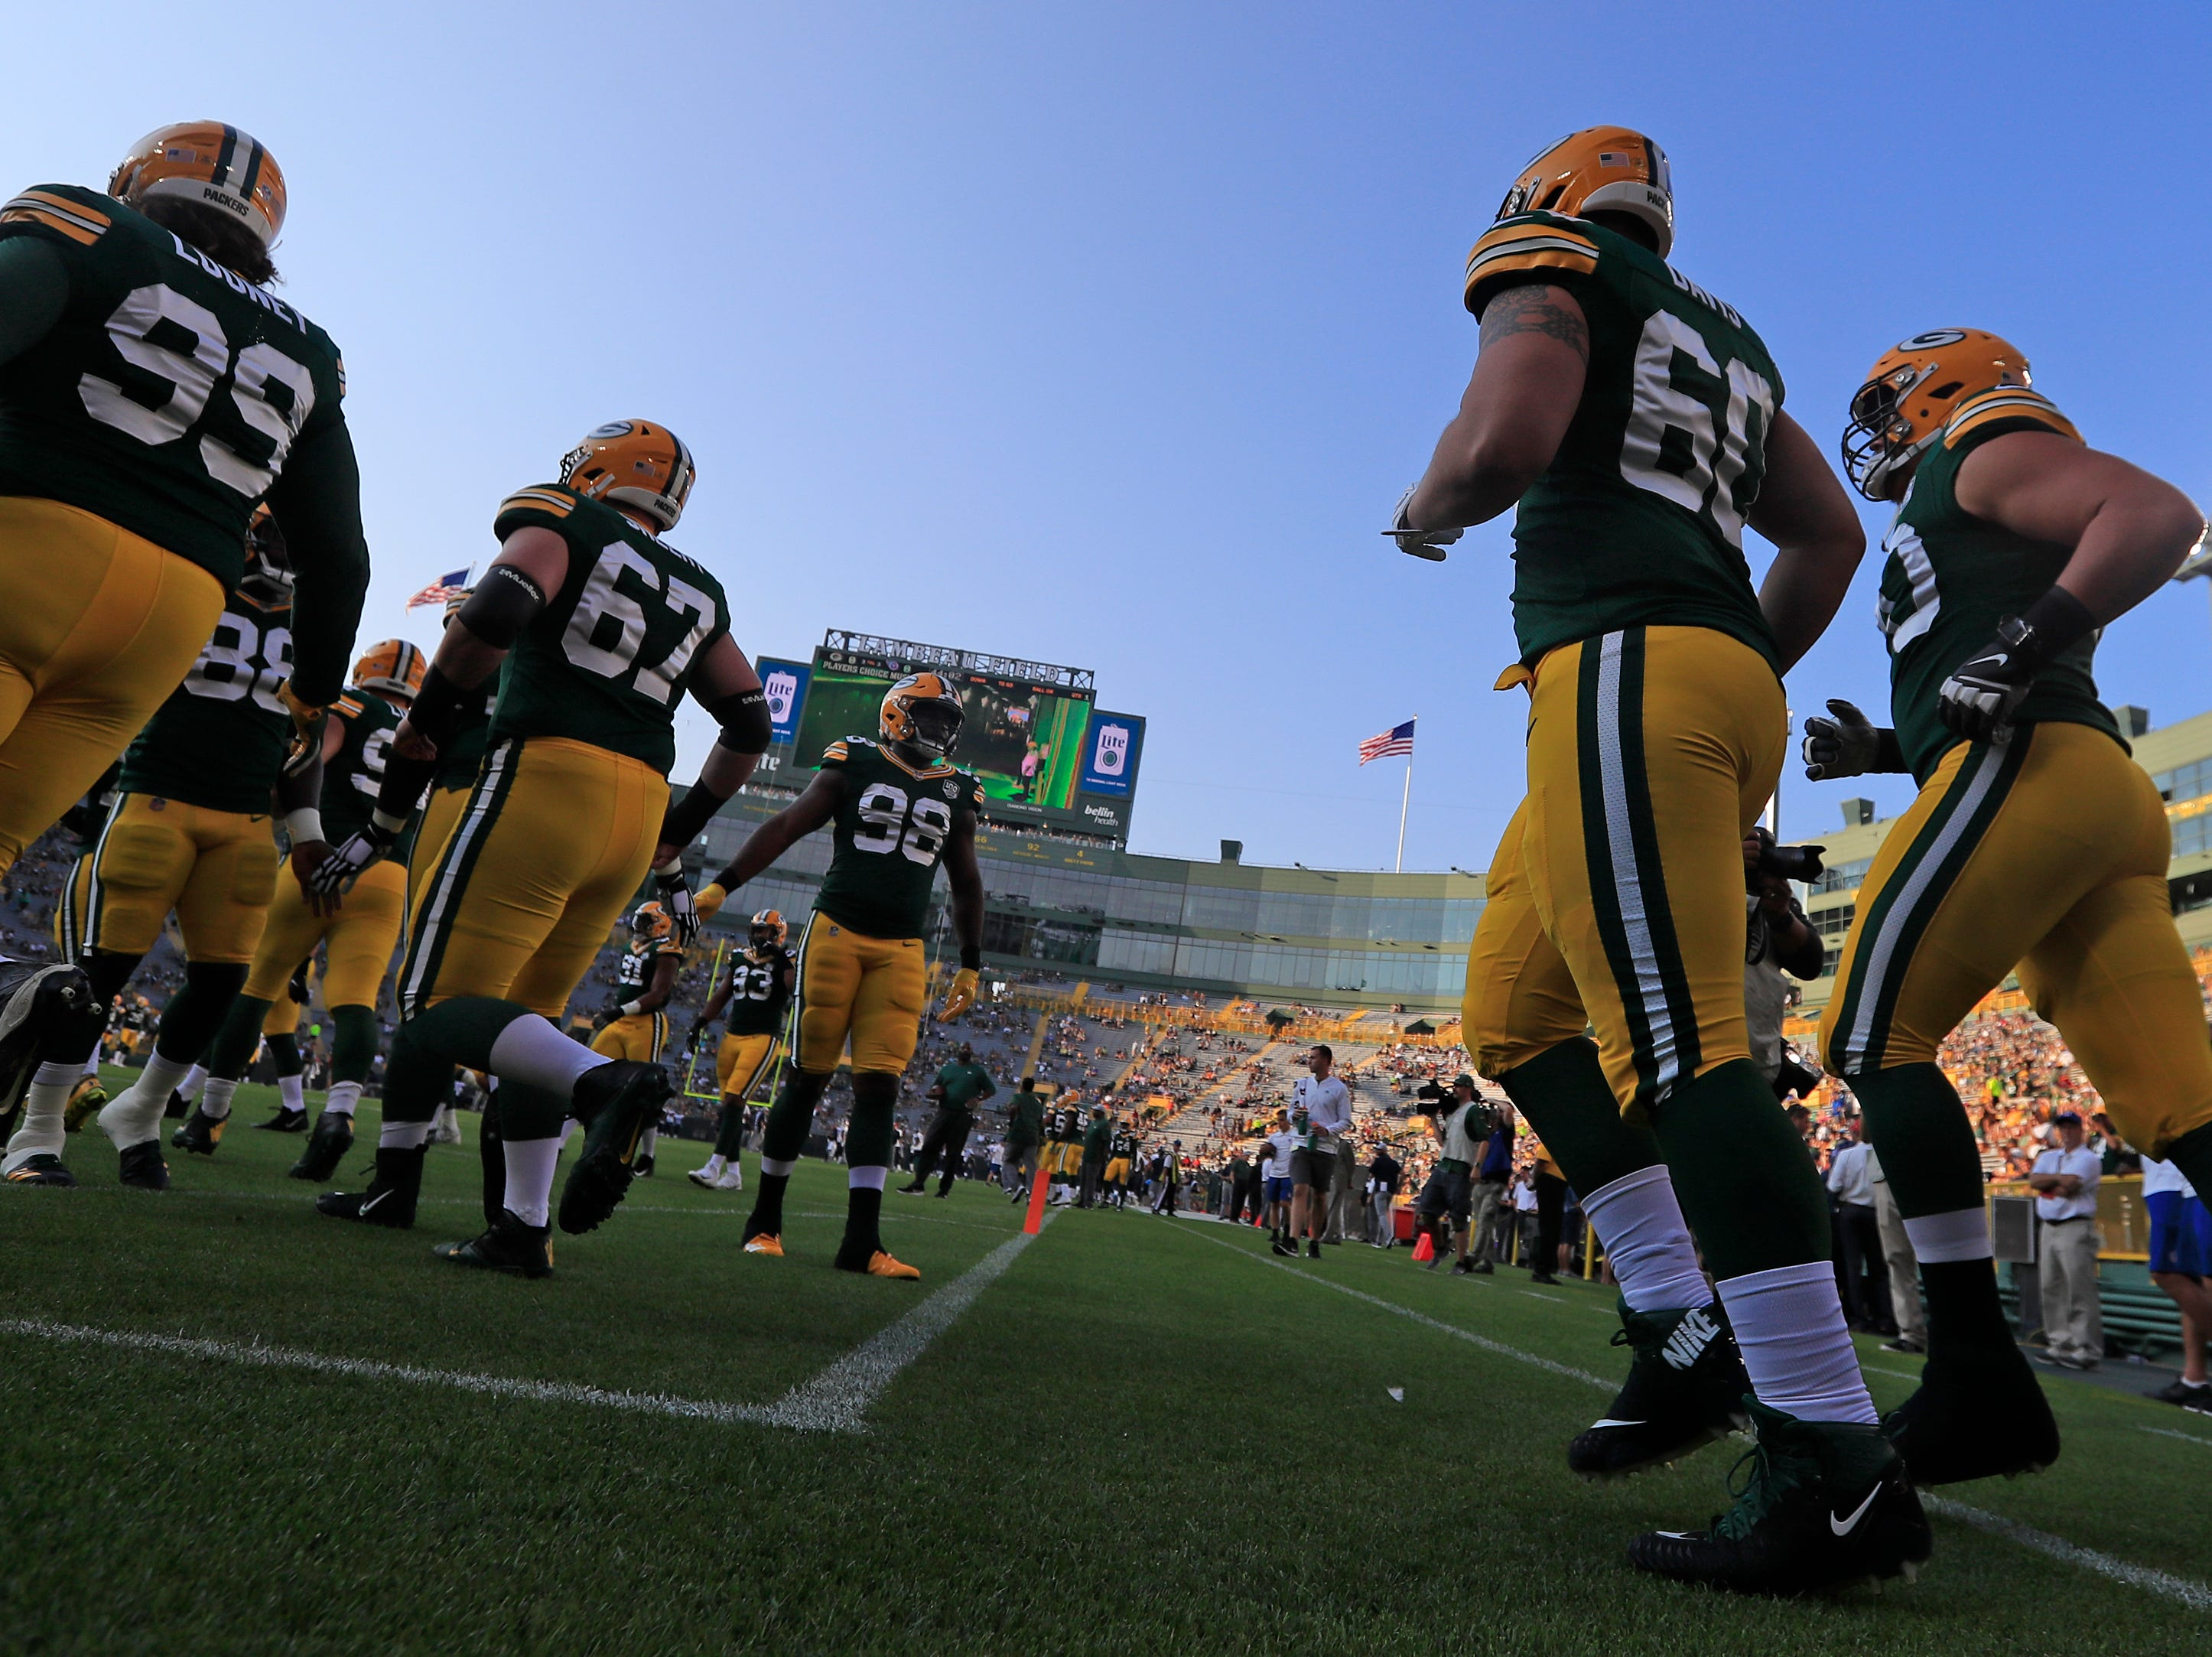 The Green Bay Packers take the field for a NFL preseason game at Lambeau Field on Thursday, August 9, 2018 in Green Bay, Wis.